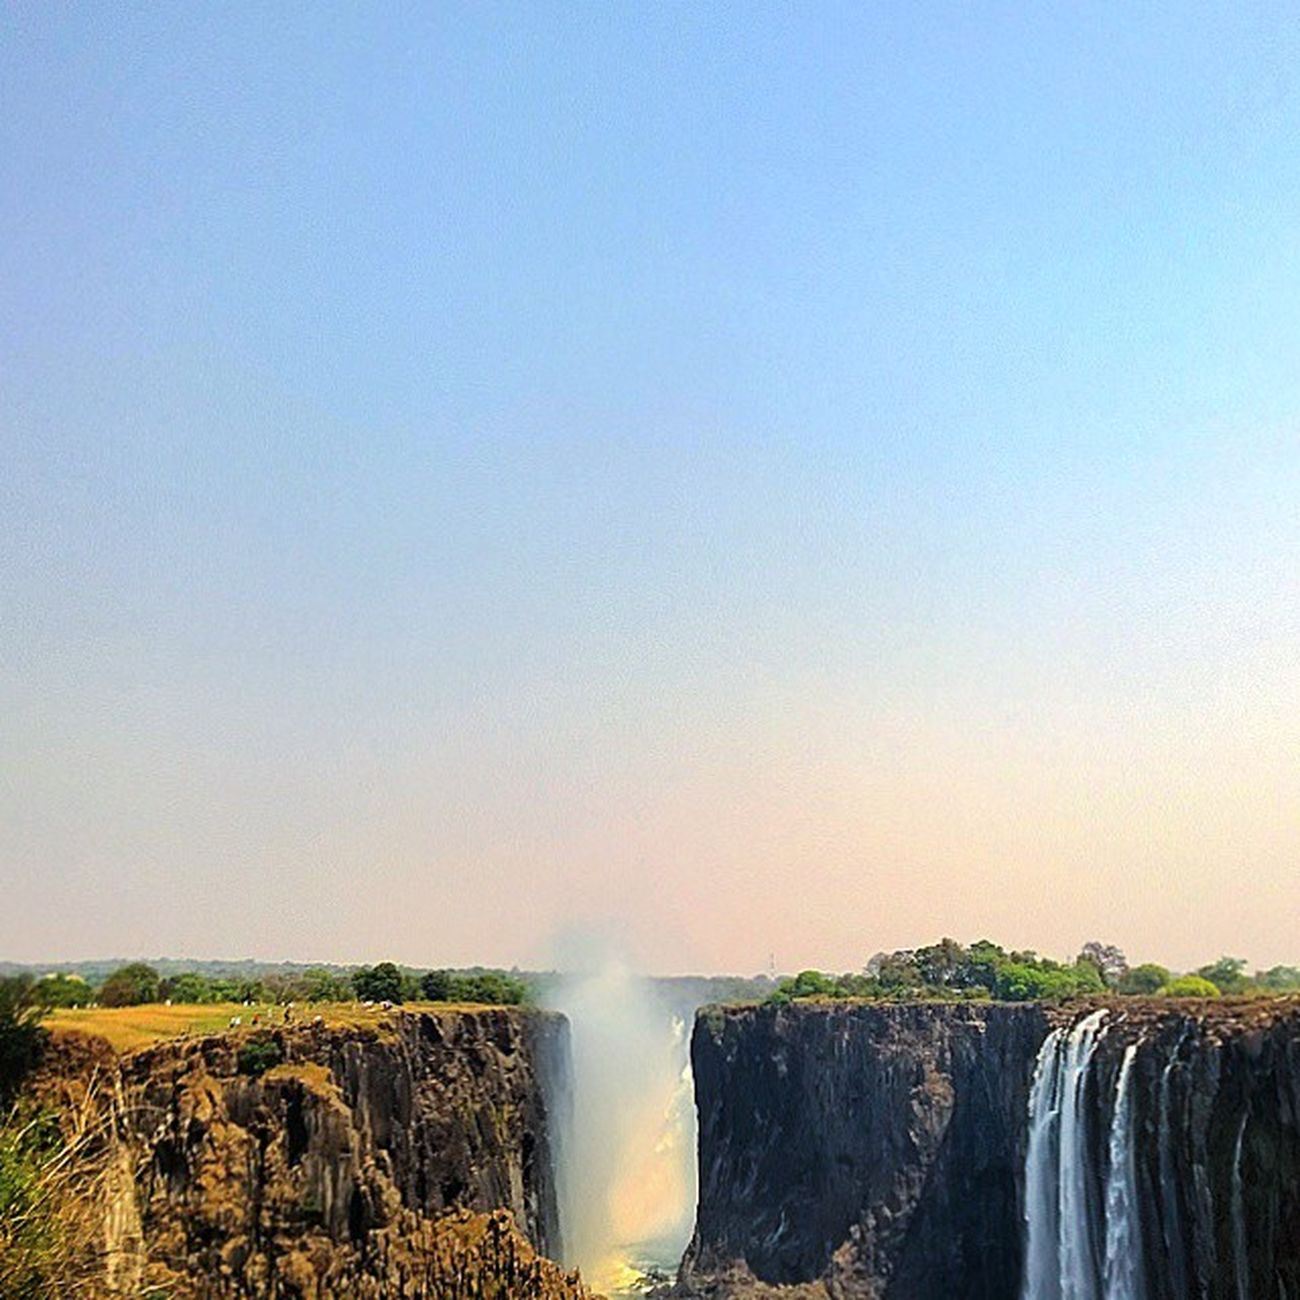 Victoria Falls............. Zambia, Africa. Wow, I could shoot Vic Falls all day each shot I take makes me want to shoot another ten. =================================== All shots taken on the Amazing Lumia 1520 Flightster in Africa. ================================ LumiaXNatGeo Photography Lumia 1520 ===================================